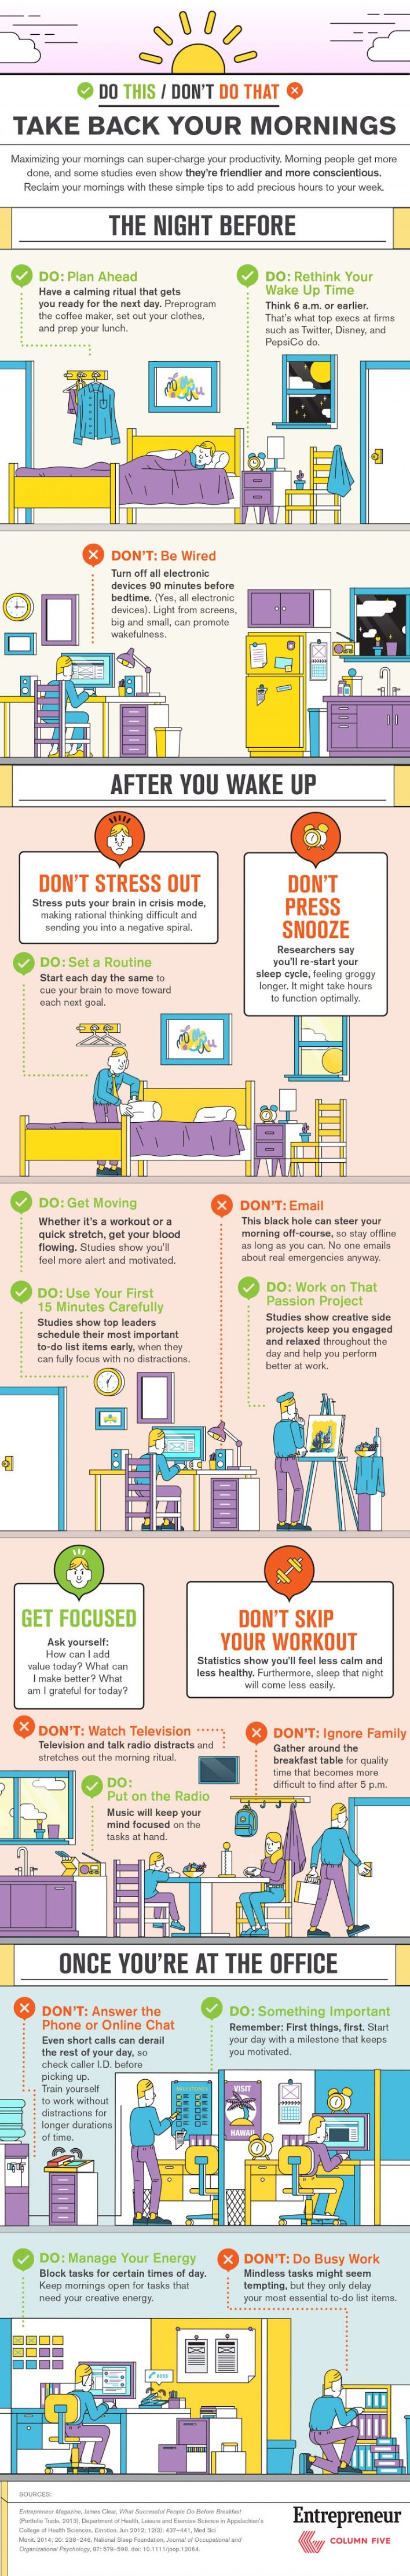 Take Back Your Mornings #infographic